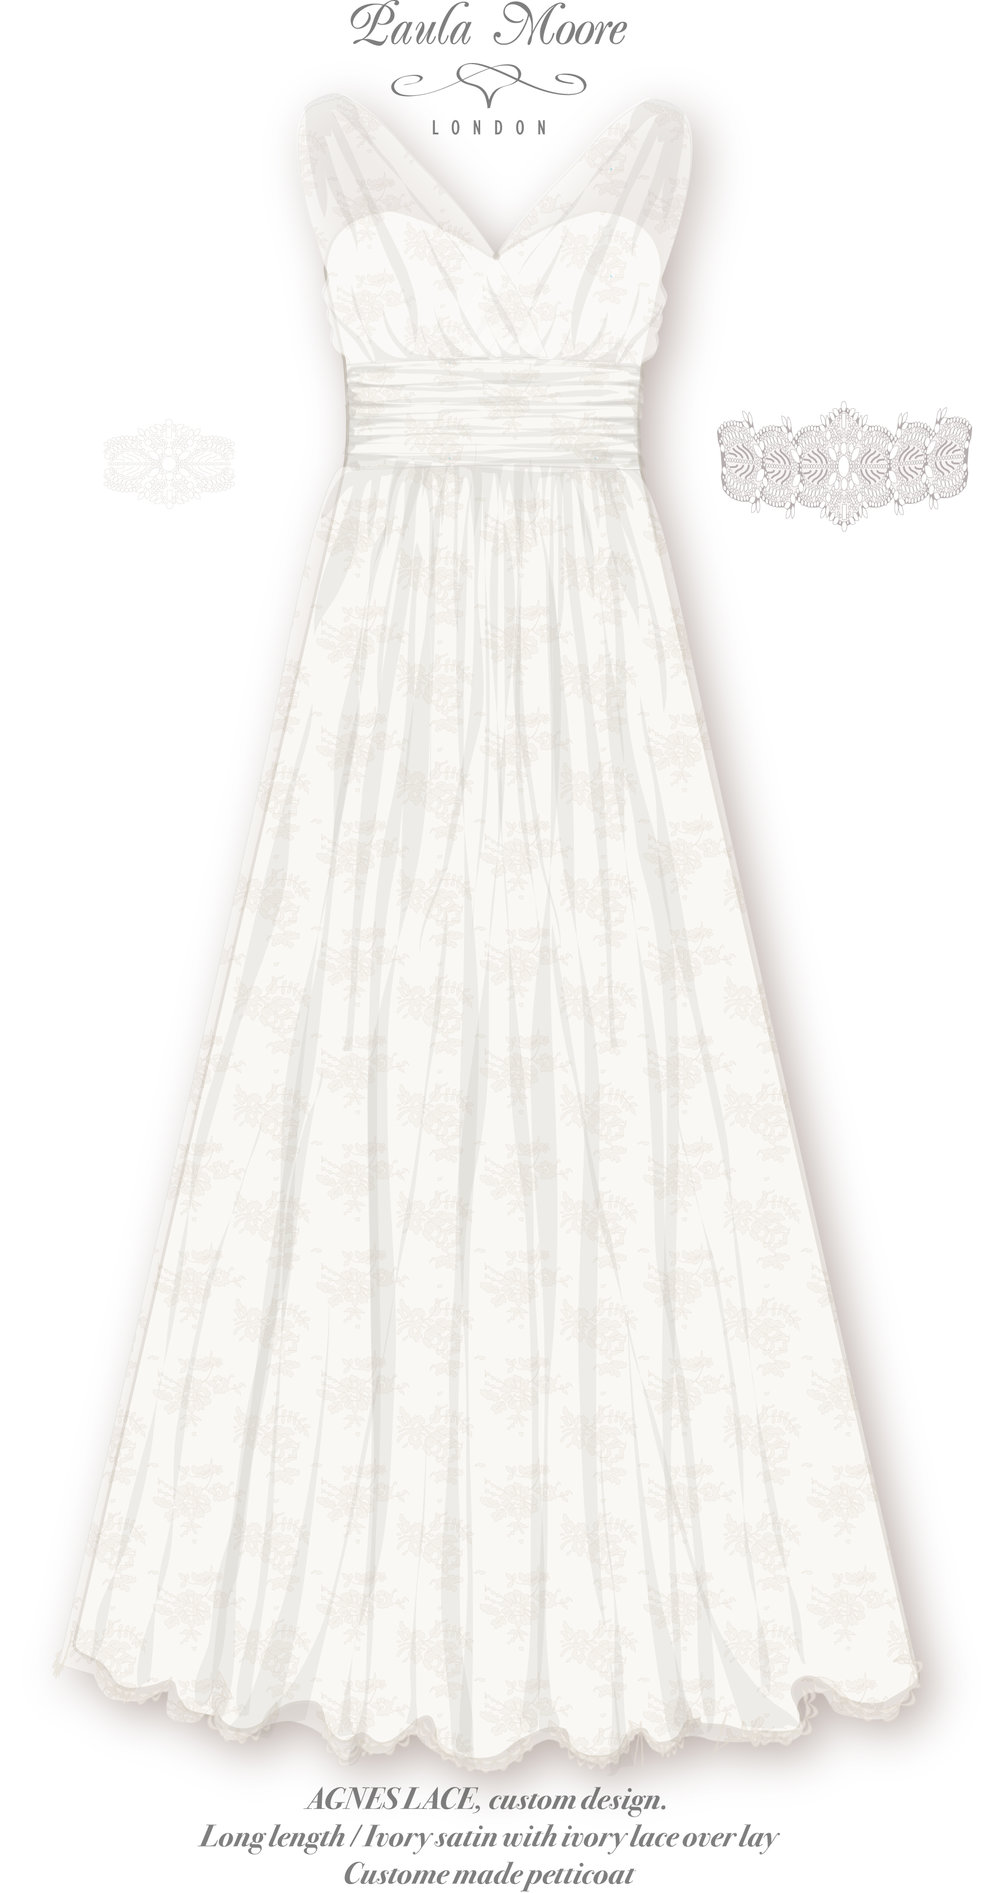 long with ivory satin with ivory lace overlay.jpg